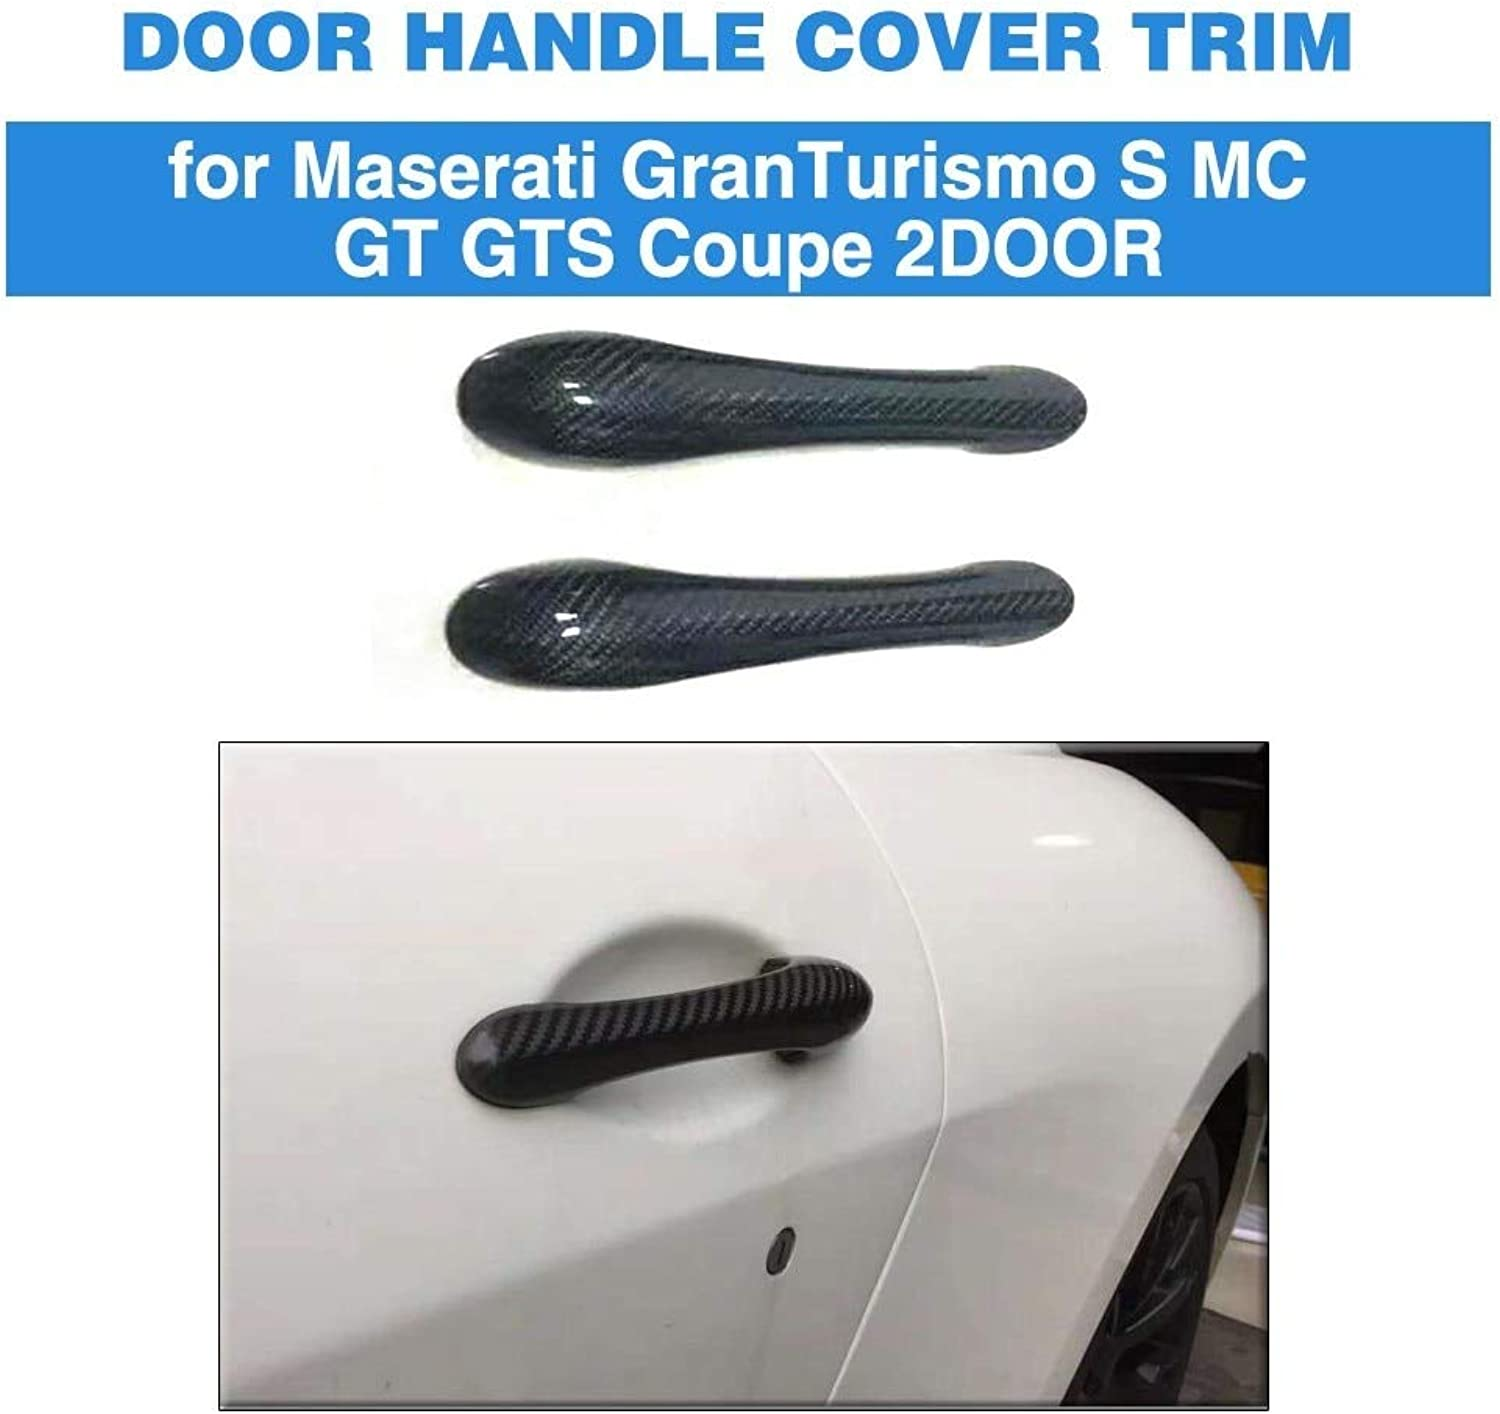 Car Door Handle Covers Trim for Maserati Granturismo S MC GT GTS Coupe 2 Door 20082012 Carbon Fiber Stickers